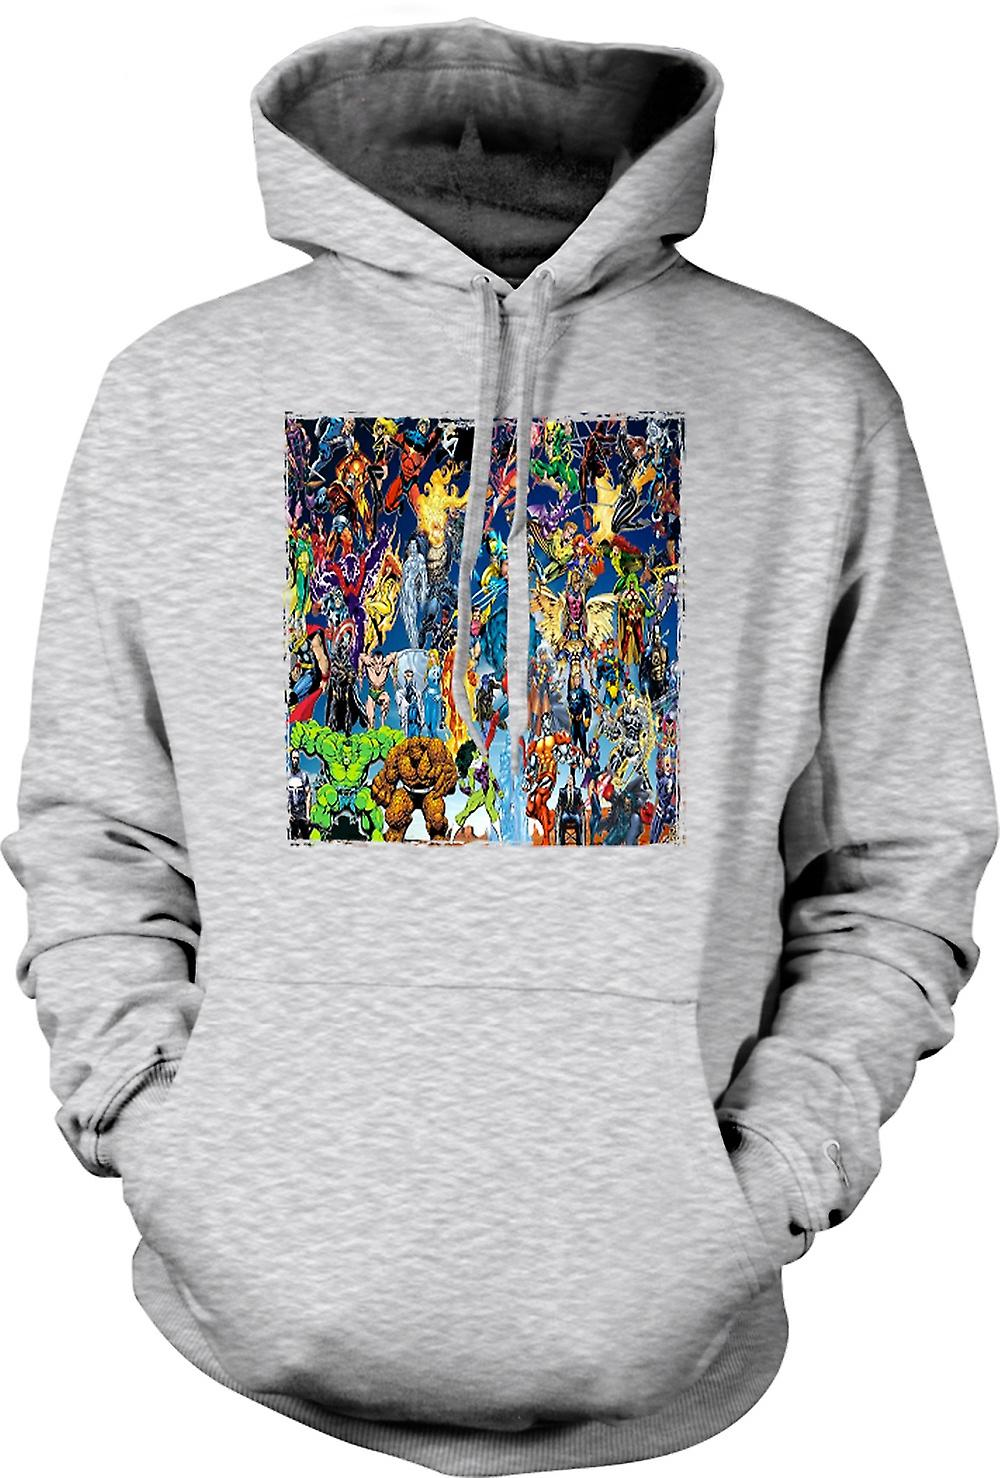 Mens Hoodie - Marvel Comic Super Hero - Collage